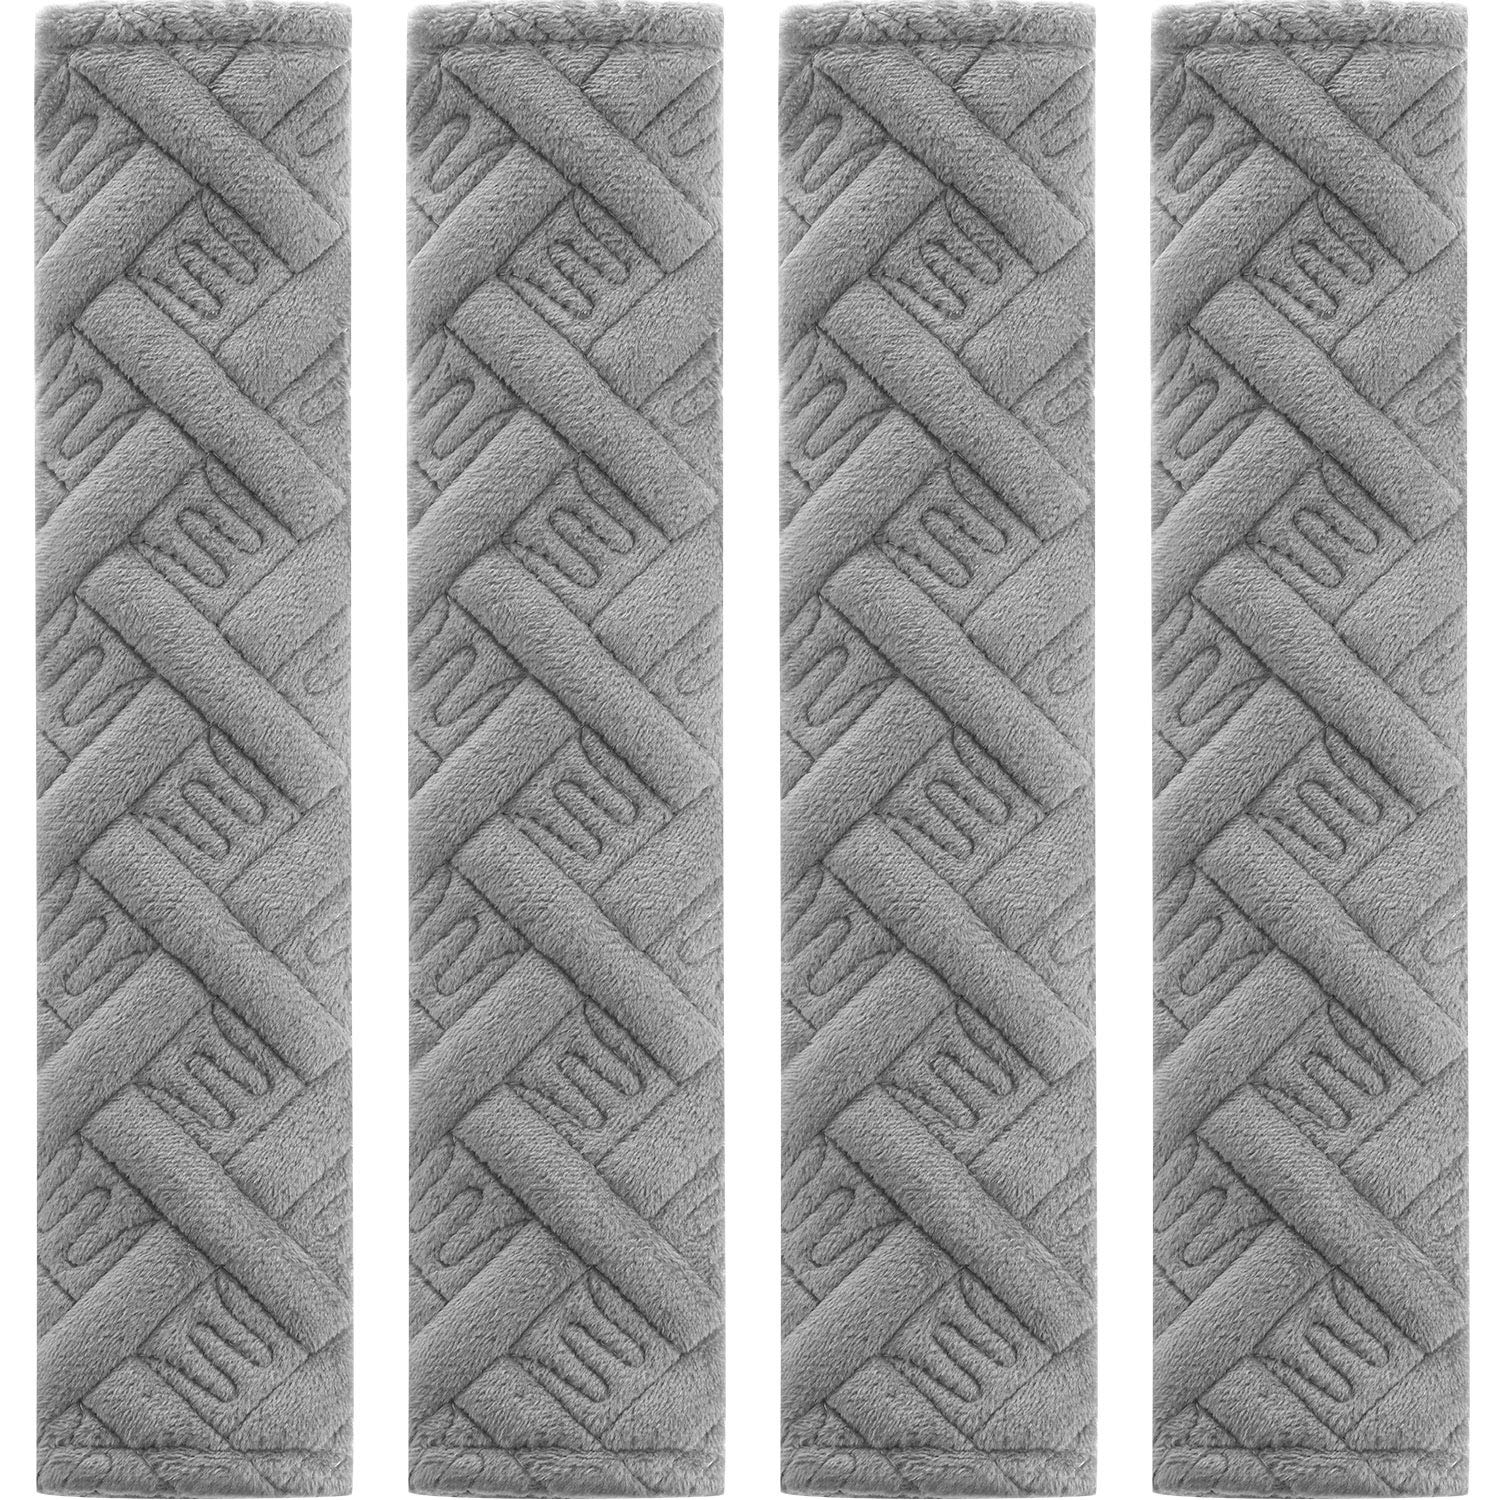 4 Pack Car Seat Belt Pads Seatbelt Protector Soft Comfort Seat Belt Shoulder Strap Covers Harness Pads Helps Protect Your Neck and Shoulder (Gray B) by Tatuo